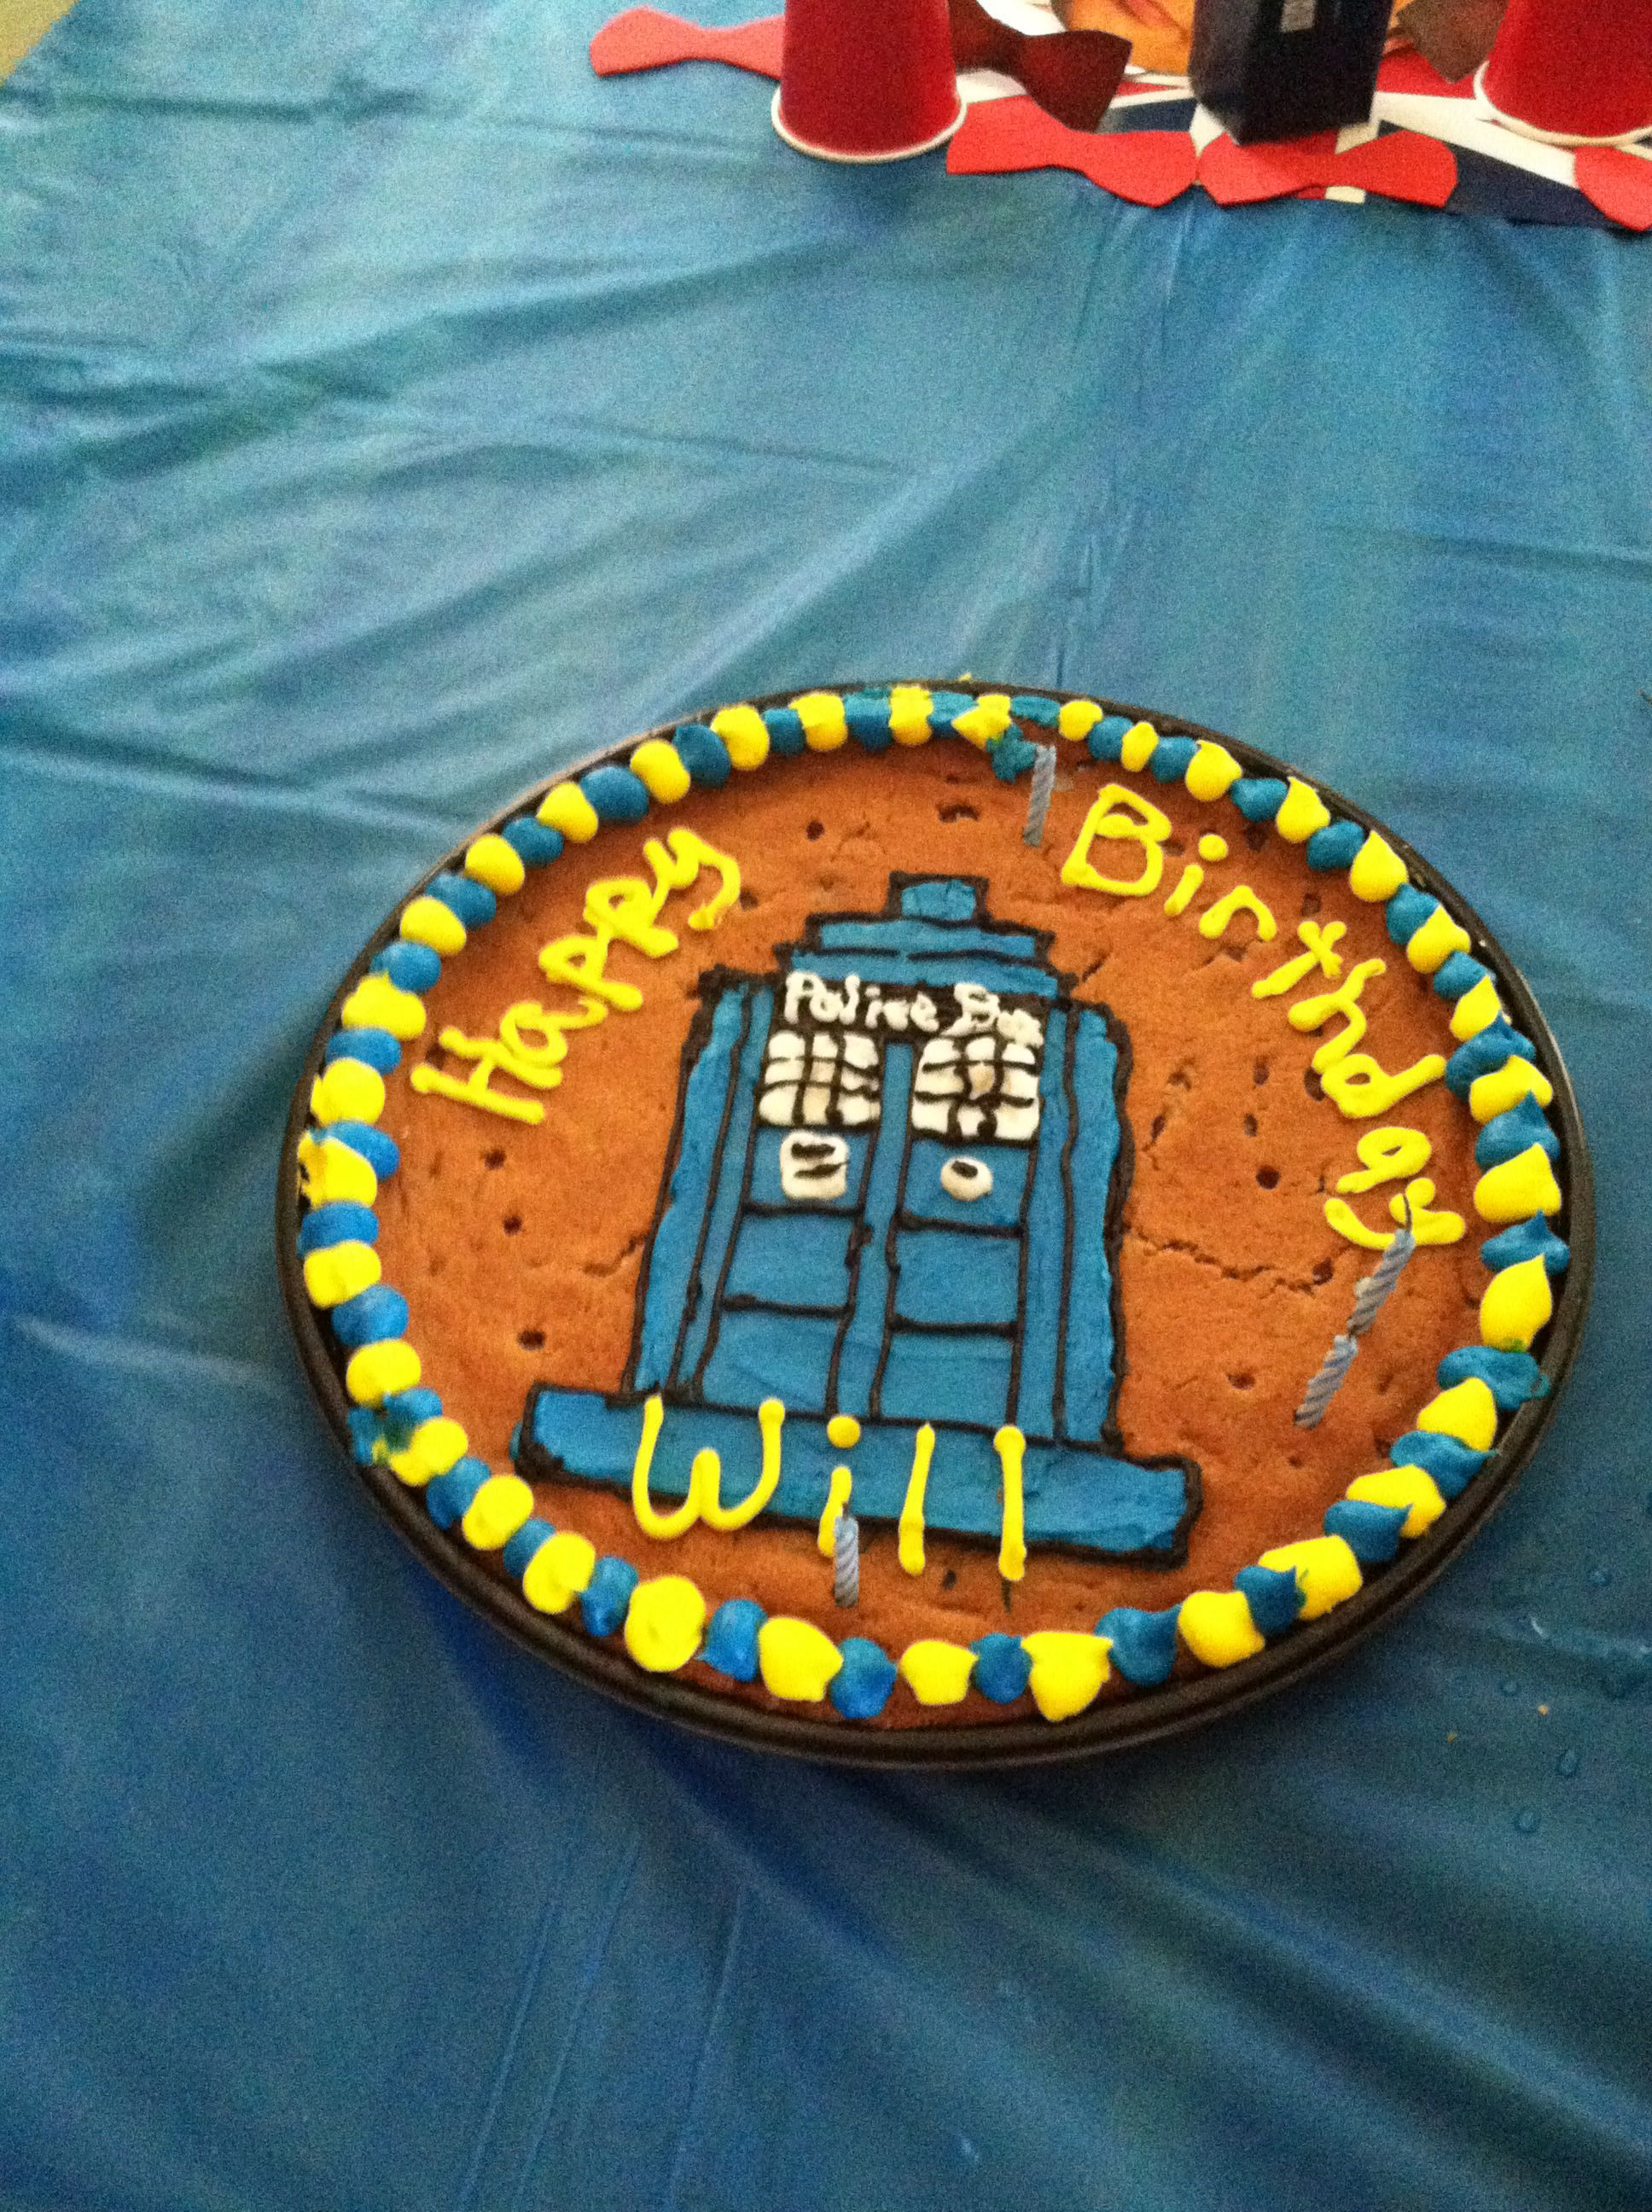 Tardis cookie cake from Winn Dixie1000 Dr Who birthday